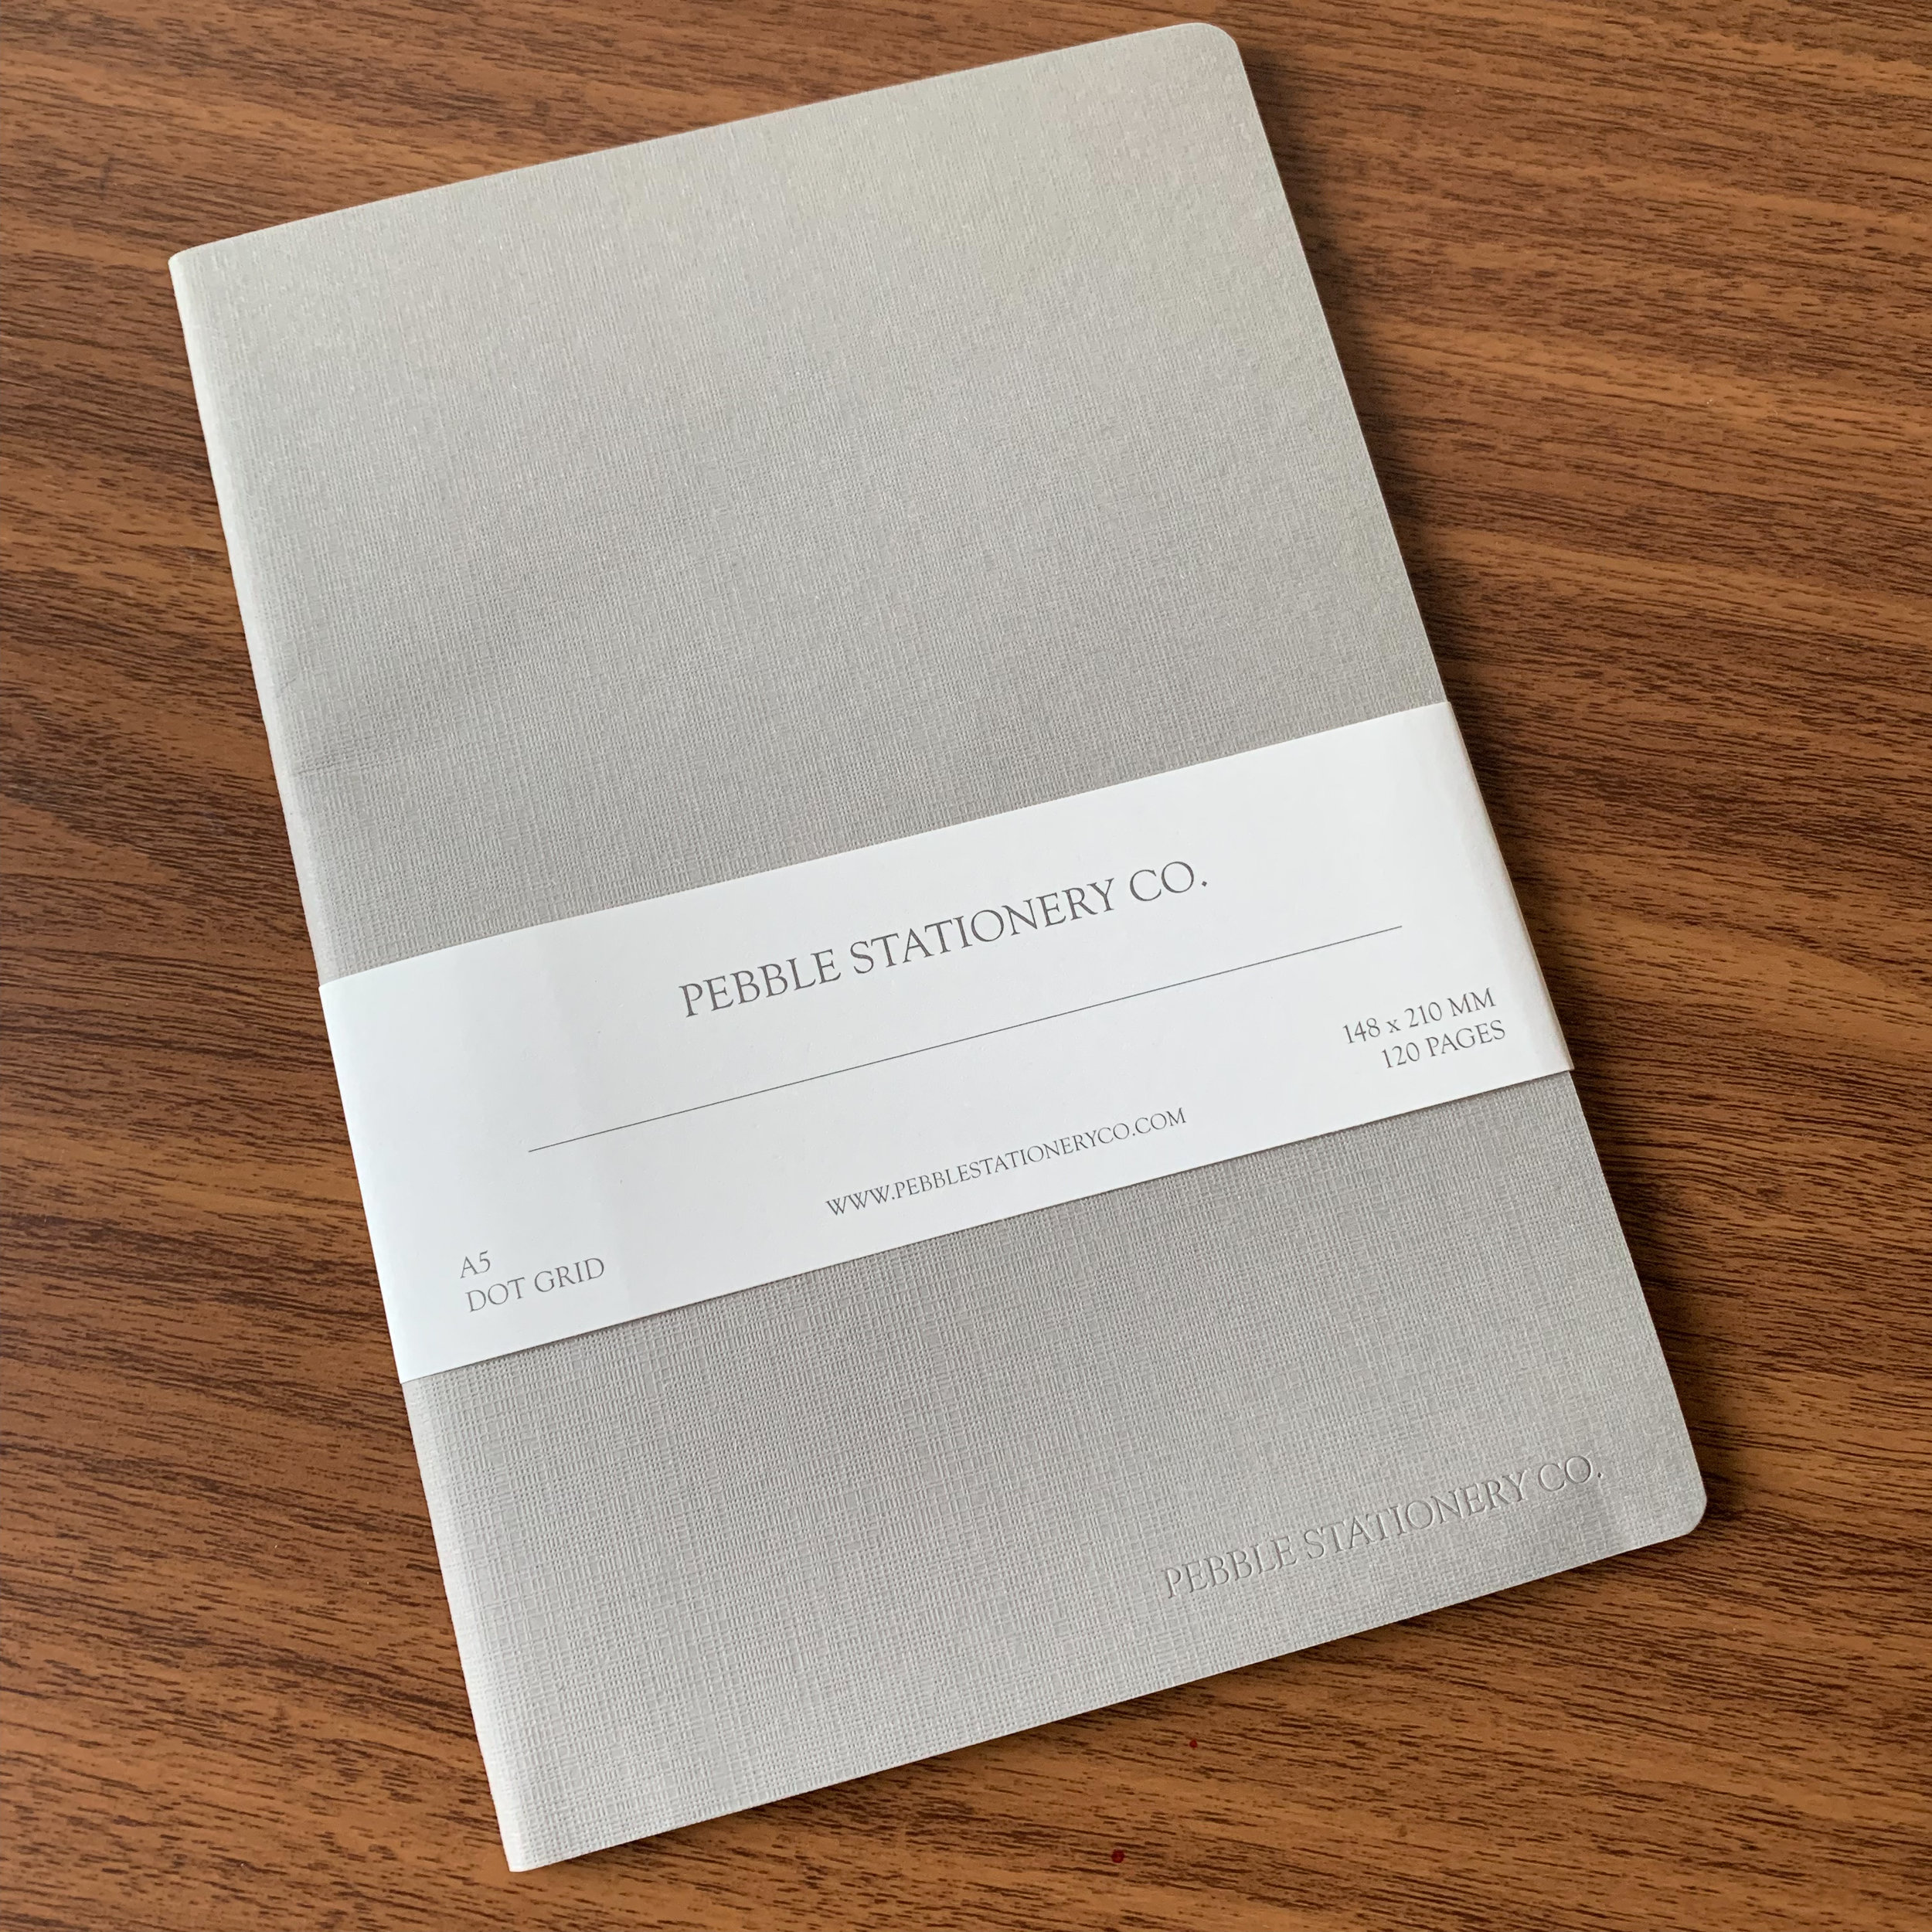 Pebble-Stationery-Co-A5-Cahier